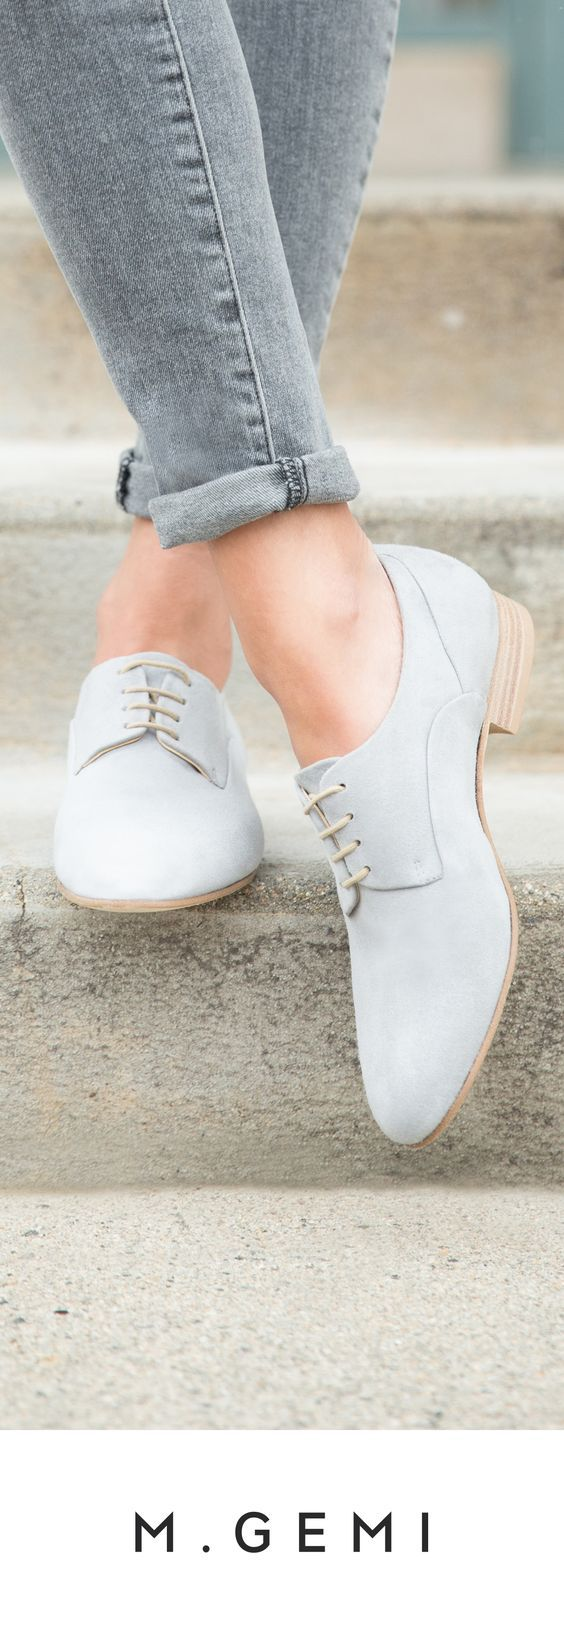 Perfect Fall / Winter Shoes. Latest Arrivals. Latest Casual Fashion Trends.